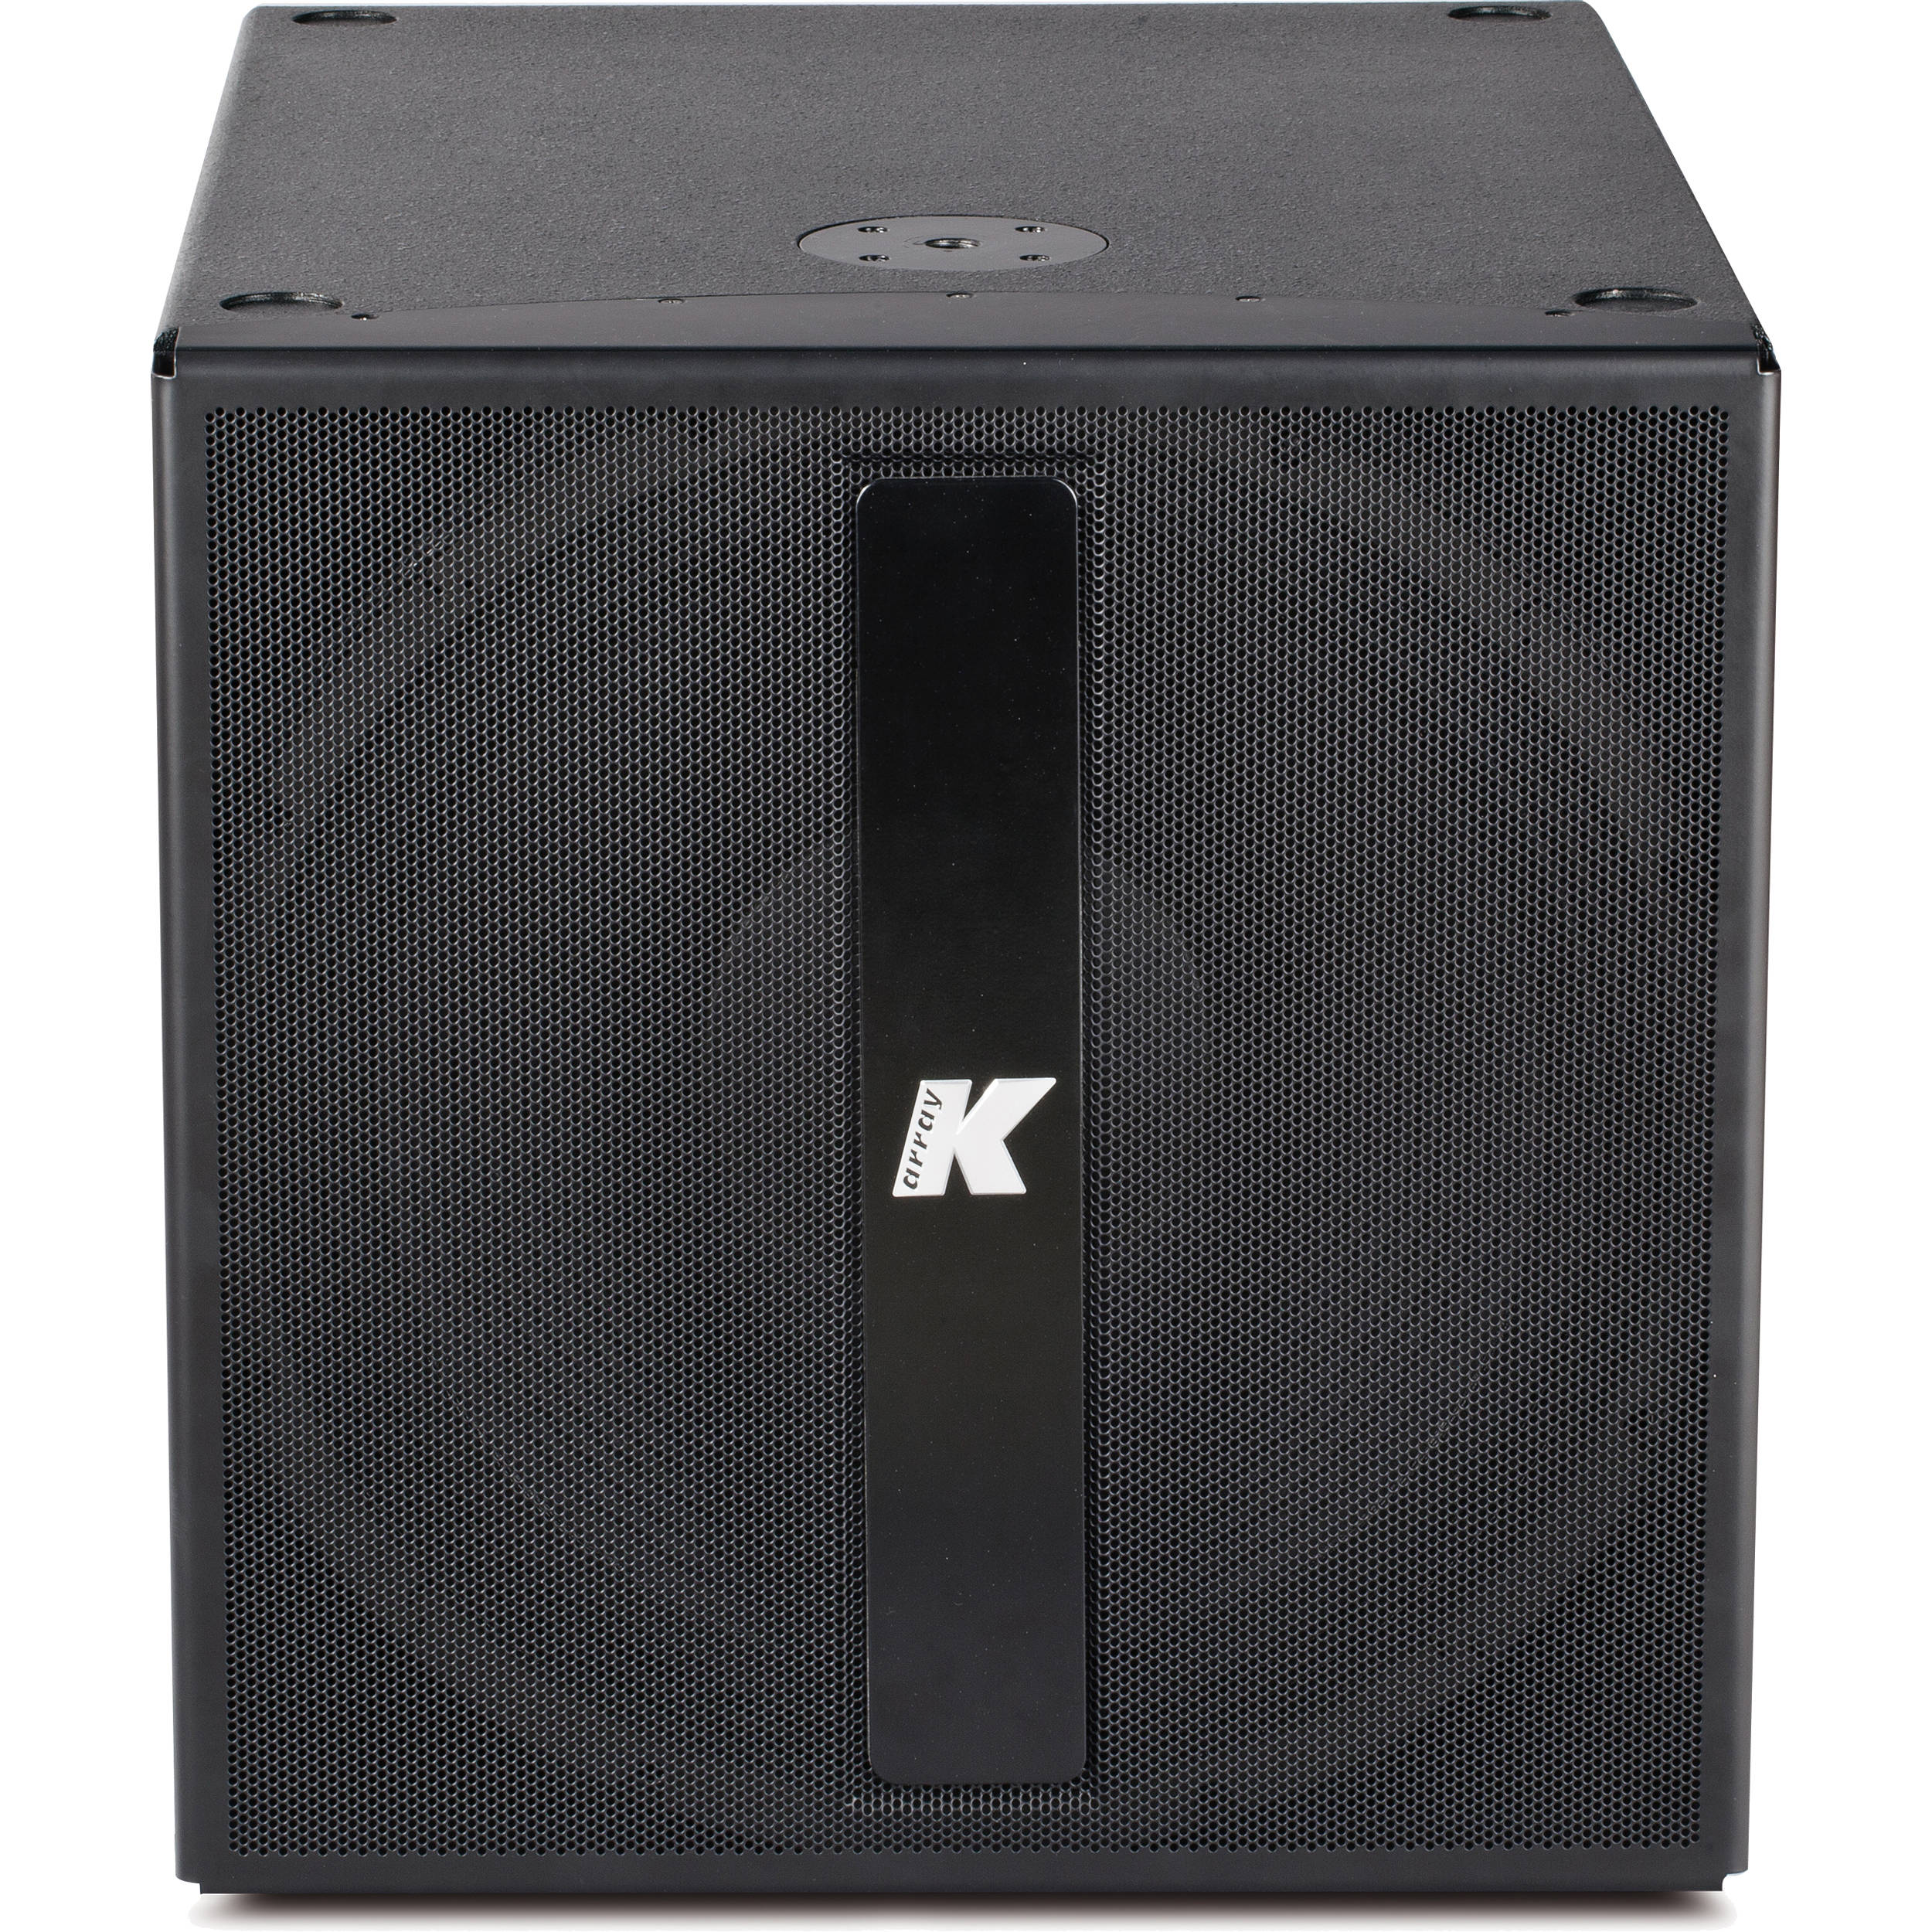 K Array Kmt21 Mark I 21 1600w Powered Subwoofer Szx1302 Lowpass Power Amplifier Circuit Board Free With Dsp